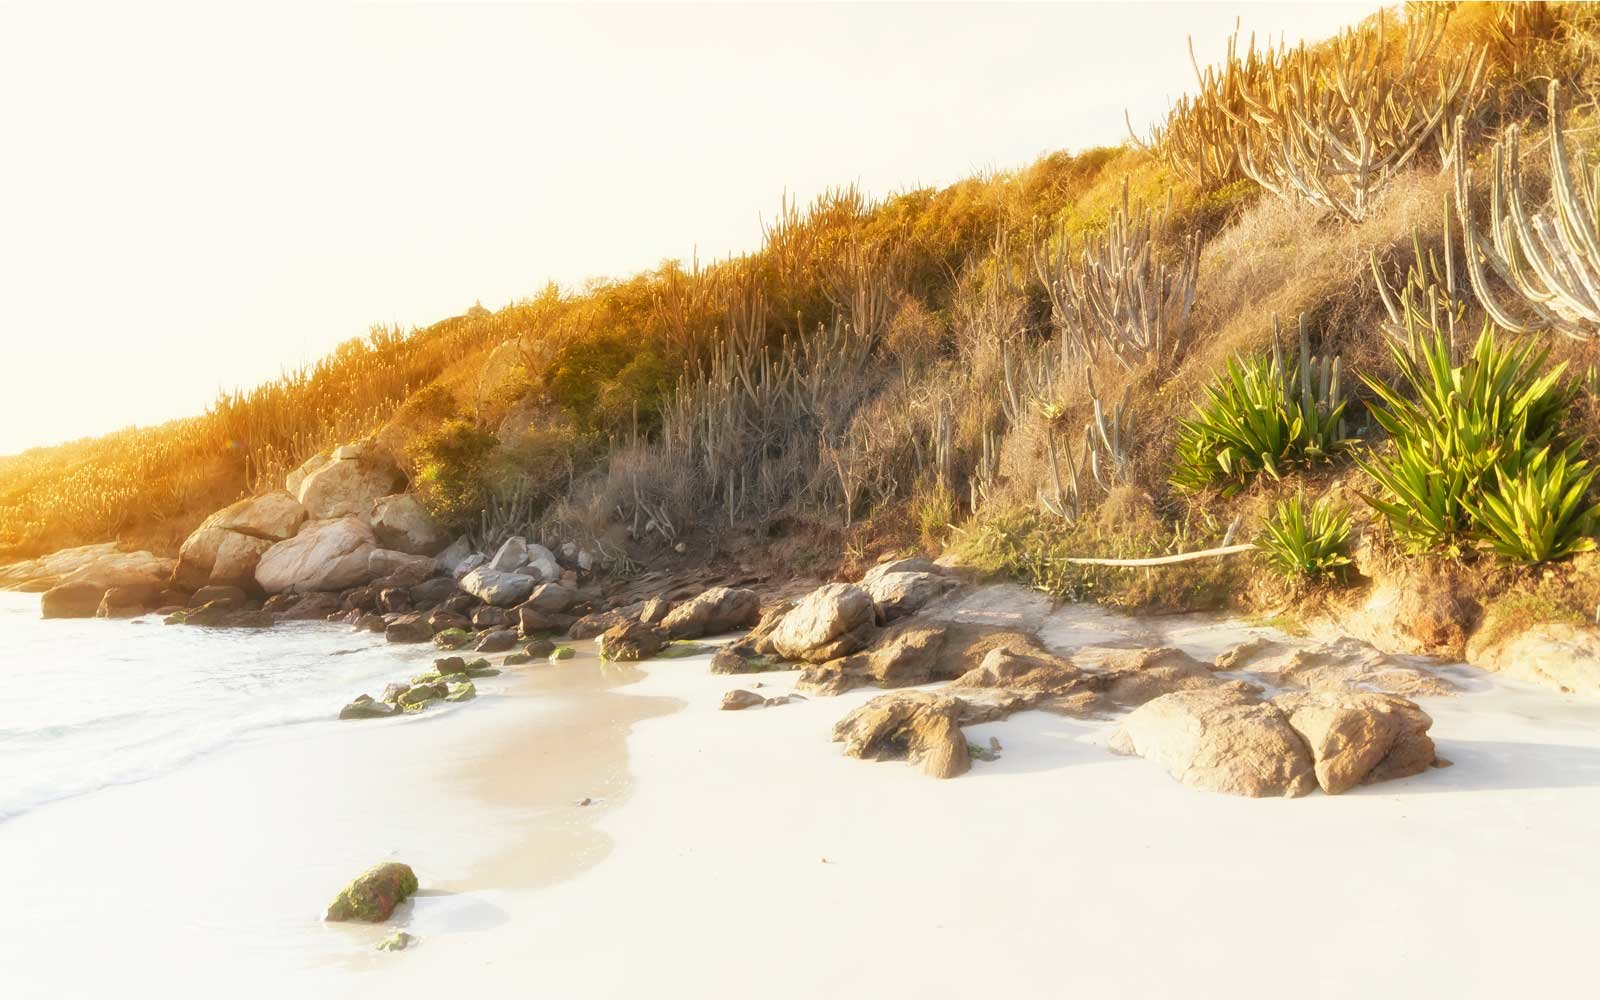 A morning sunlight illuminating the mountain and its cacti at Praia do Forno in Arrail do Cabo, Brazil